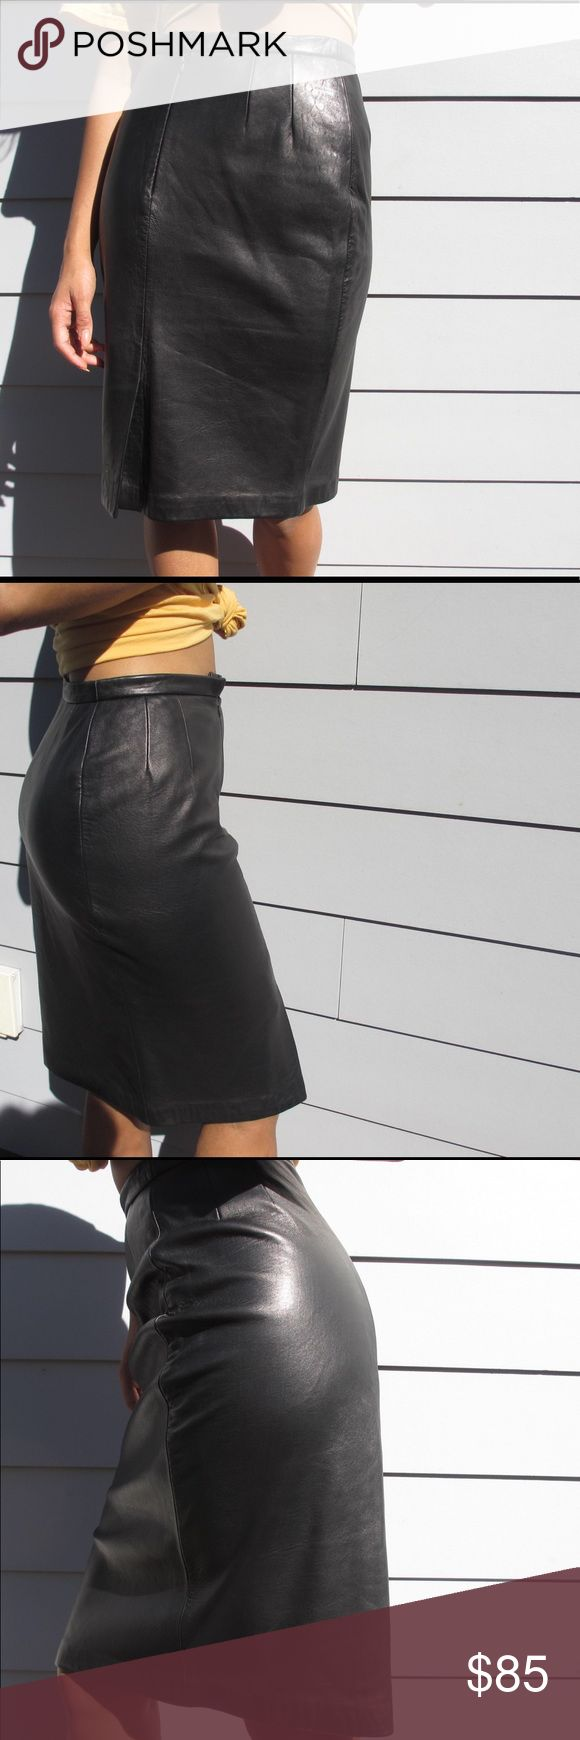 Ralph Lauren Black Leather Midi Pencil Skirt Ralph Lauren classic vintage black leather skirt. This knee high pencil skirt is perfect for looking fashionable to at any work event or social! 100% Leather, and is made in the US. There is a small defect on the zipper of the skirt; the clasp over he zipper has broke so it will not fully close (pictures of this provided above) although it can easily be fixed at any tailor or diy.                 Make an offer!! Ralph Lauren Skirts Midi